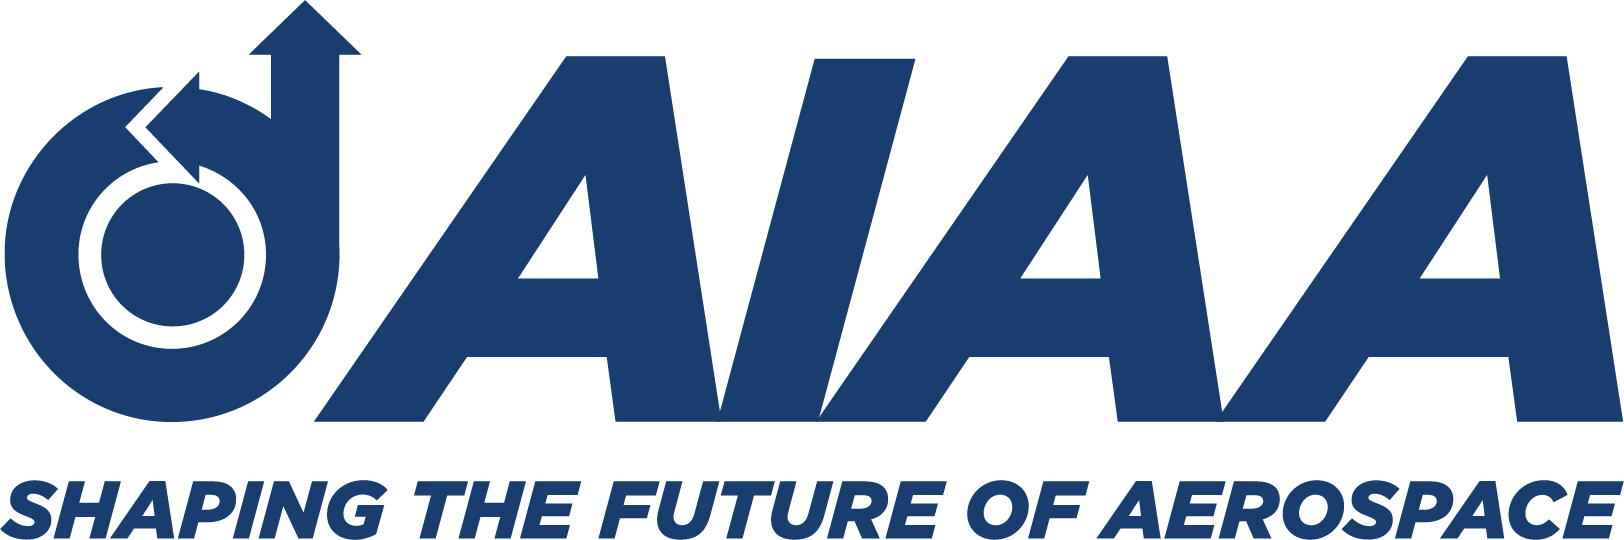 This resource was created by AIAA